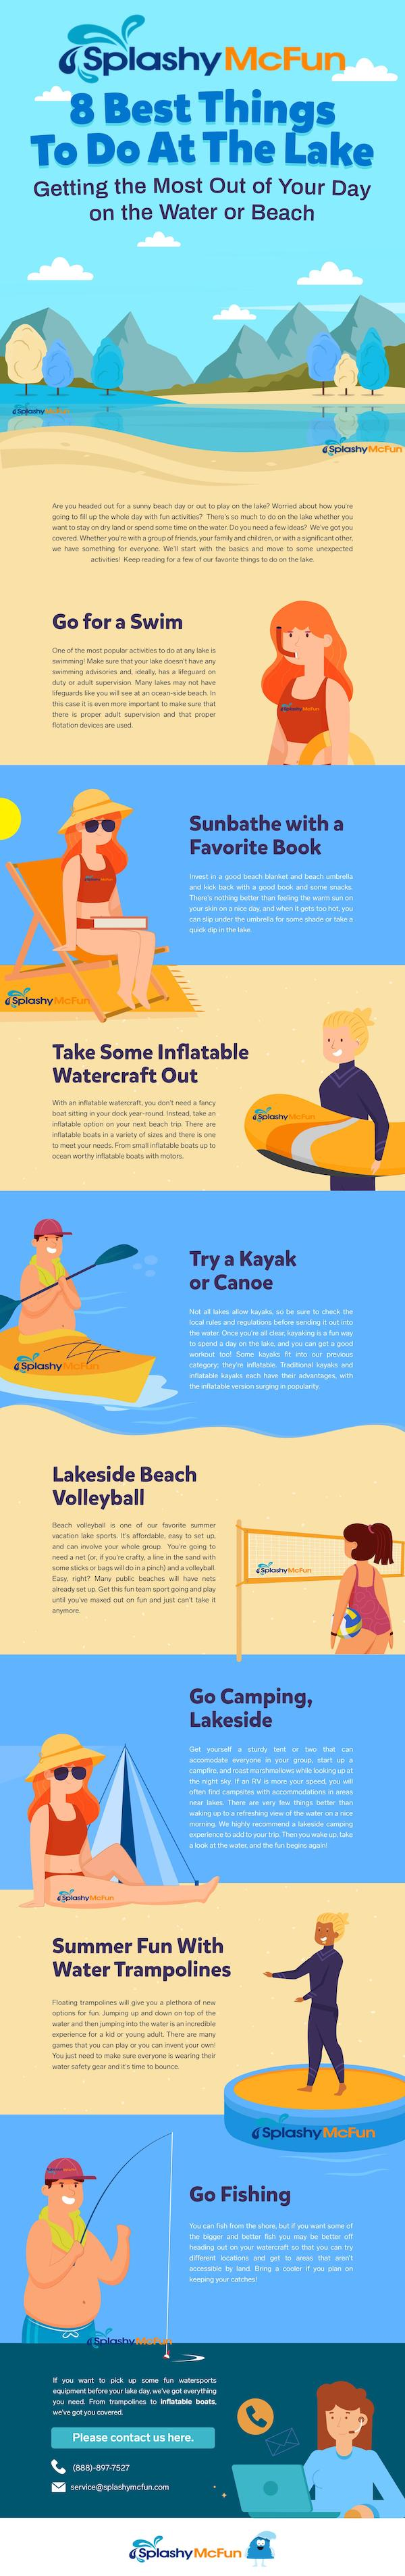 8 Best Things To Do at The Lake Infographic. This image shows all of the 8 best things listed in the blog with images of each activity.